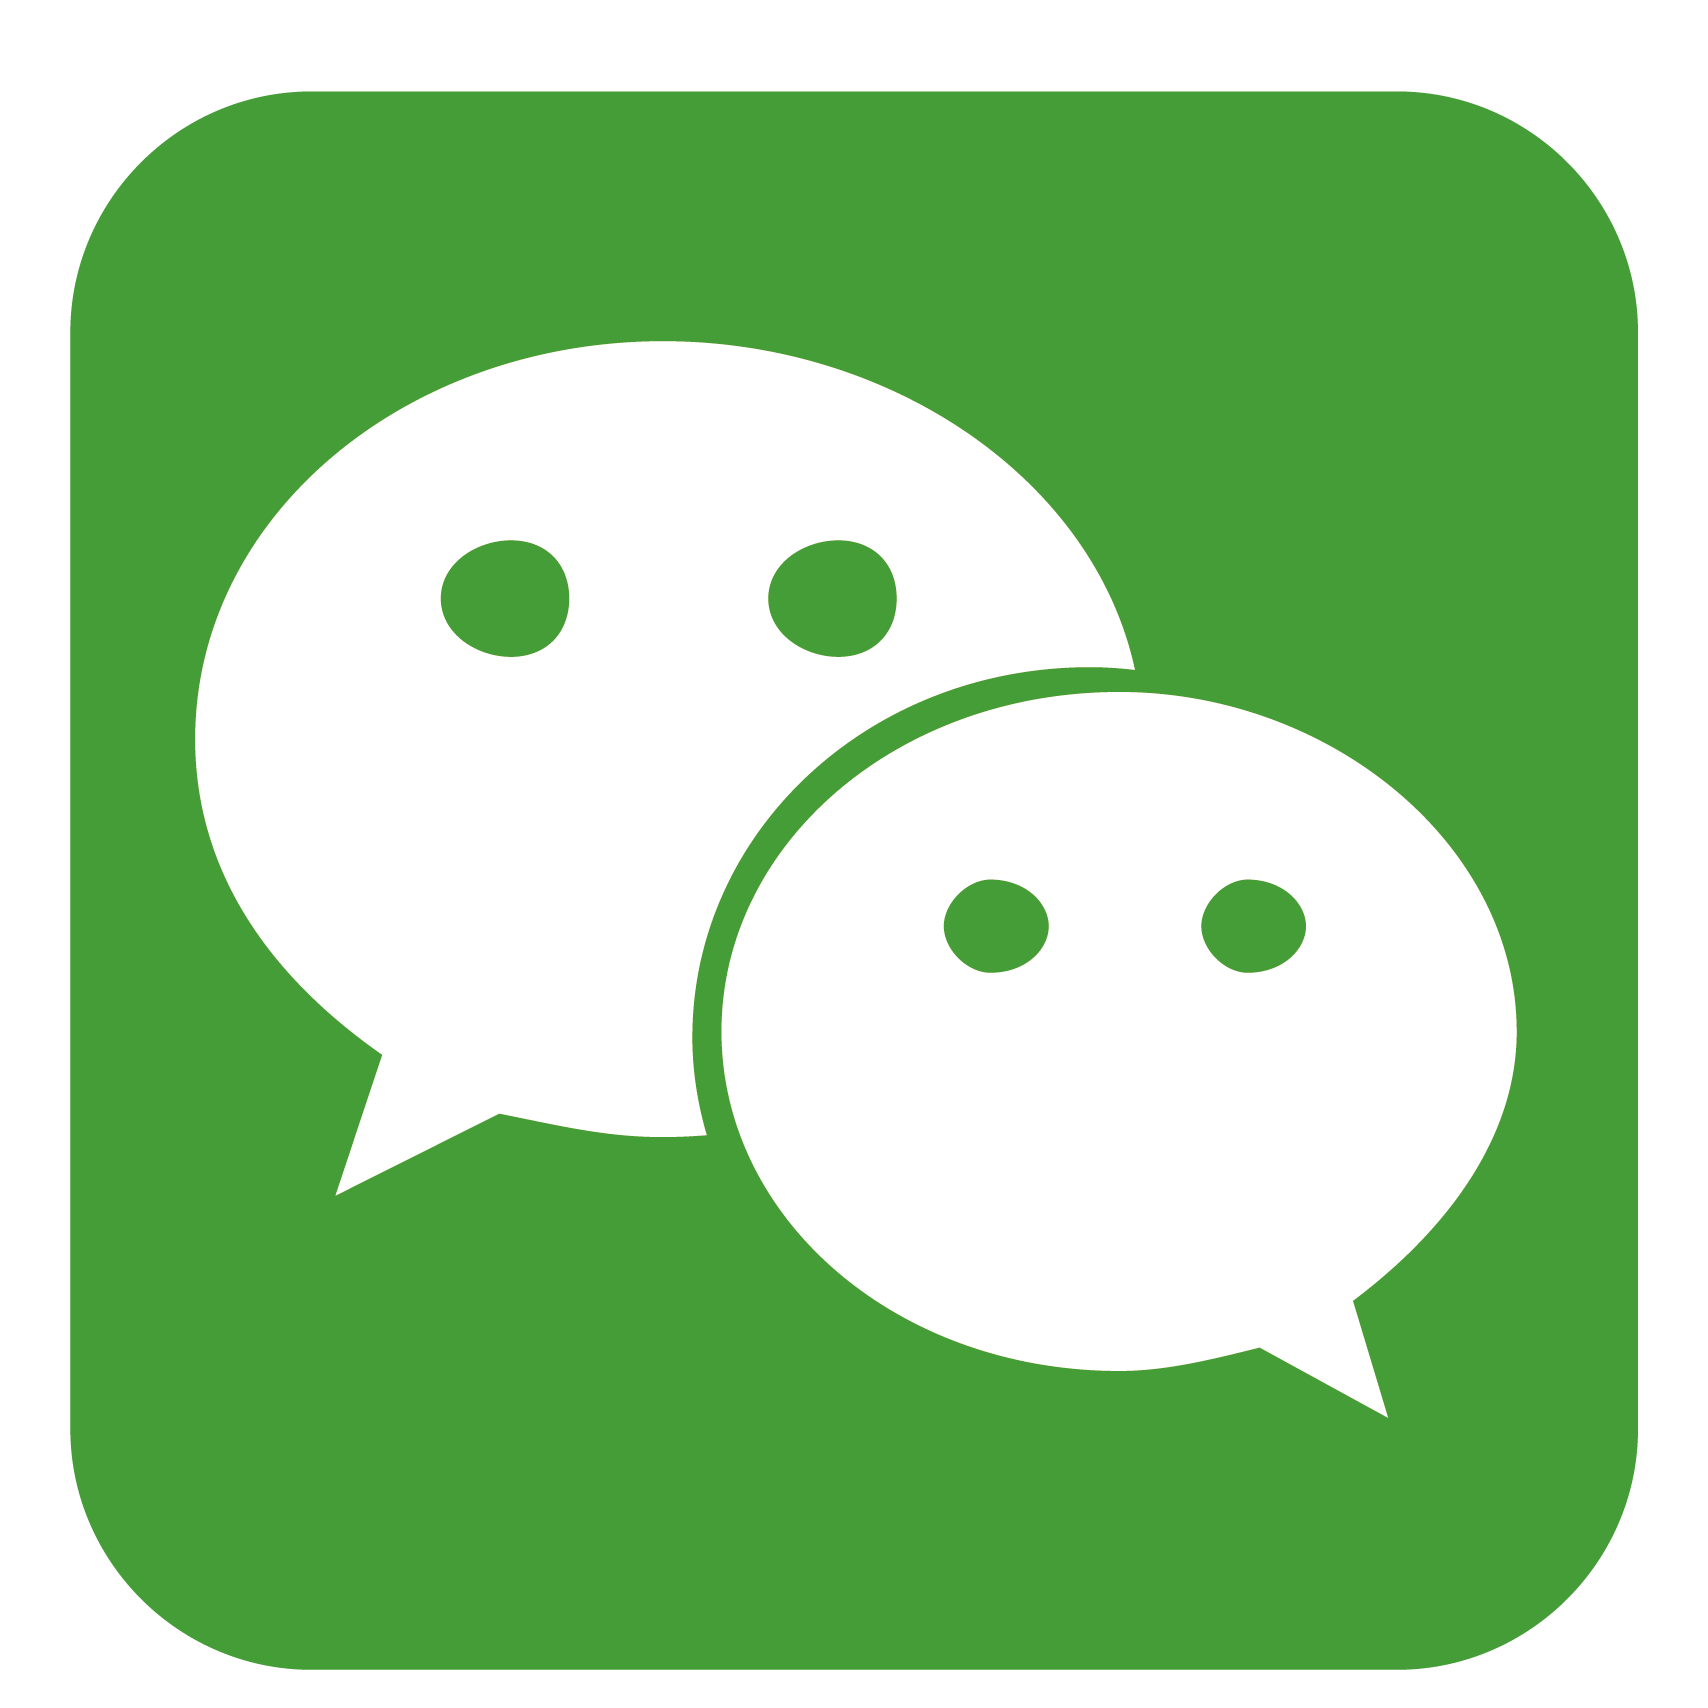 Vector Network Icons Linux Scalable Computer Wechat PNG Image